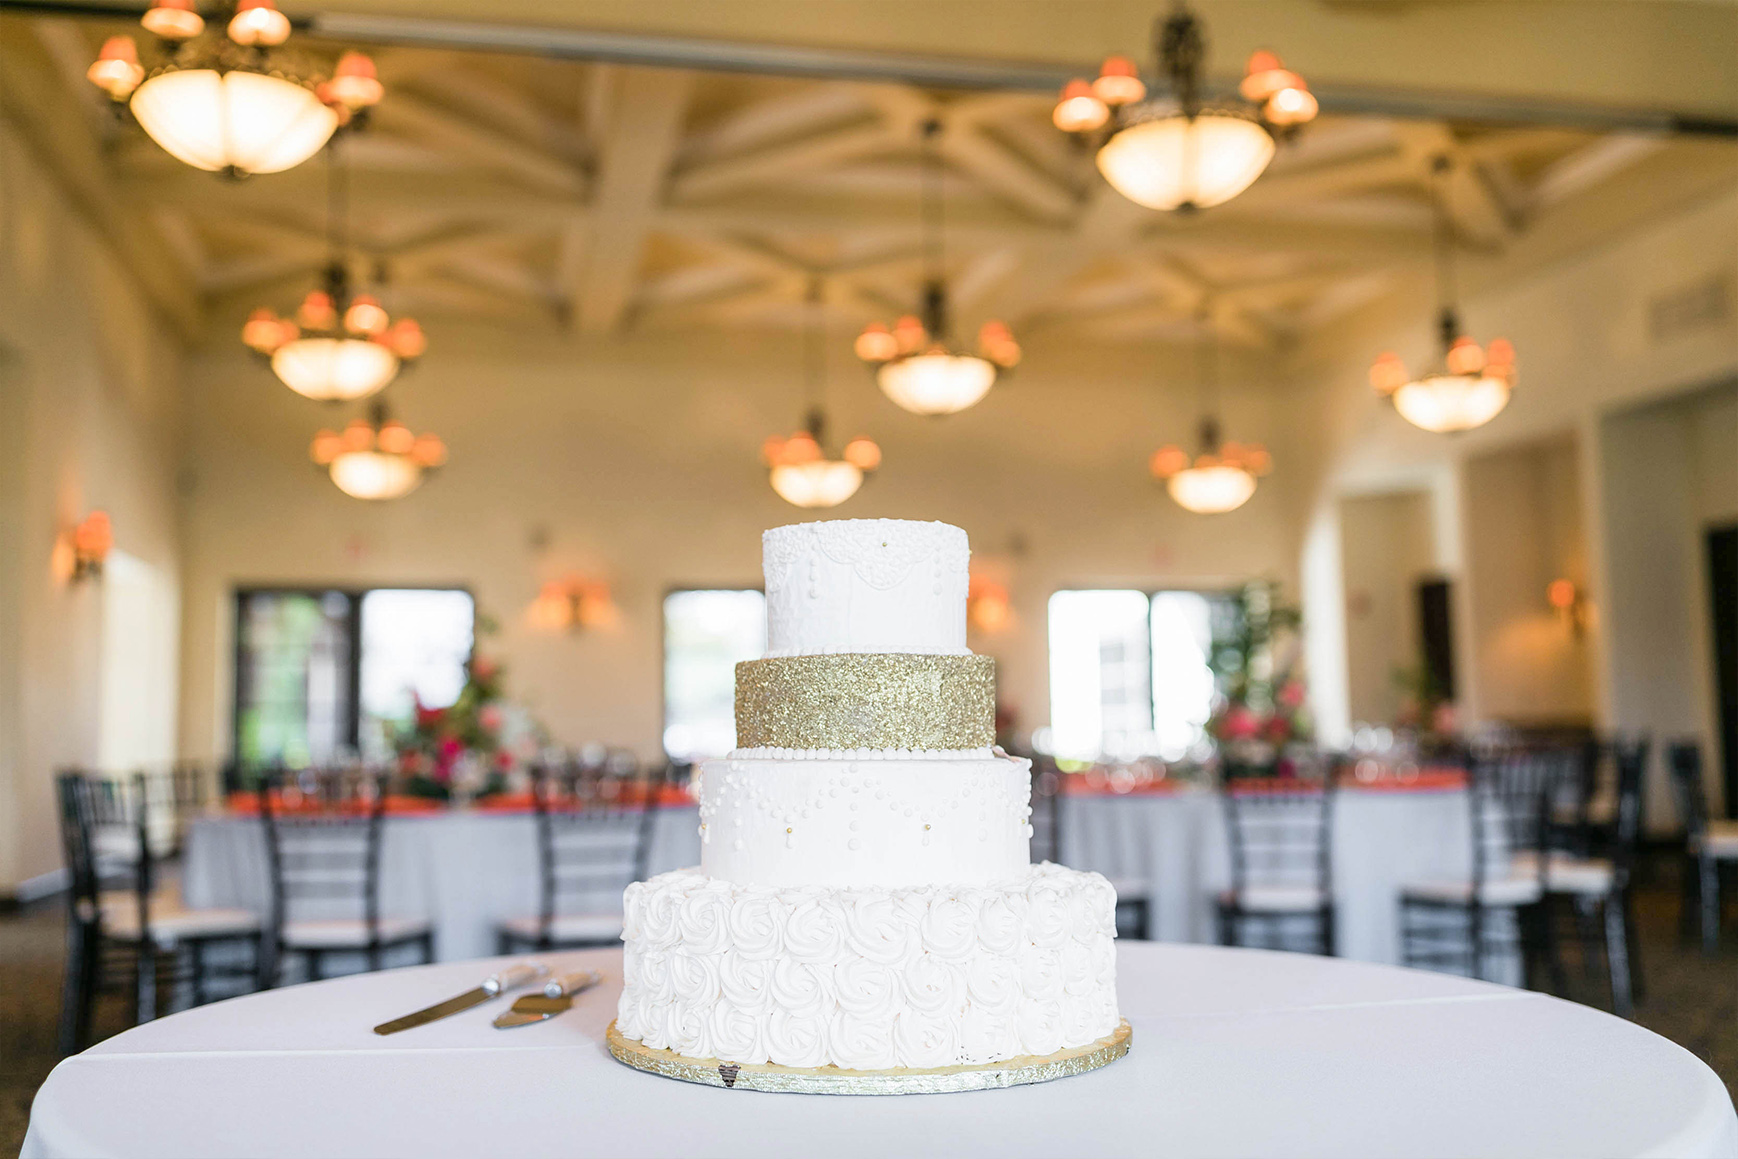 Glitter Cake - Fallbrook - Fallbrook, California - San Diego County - Wedgewood Weddings